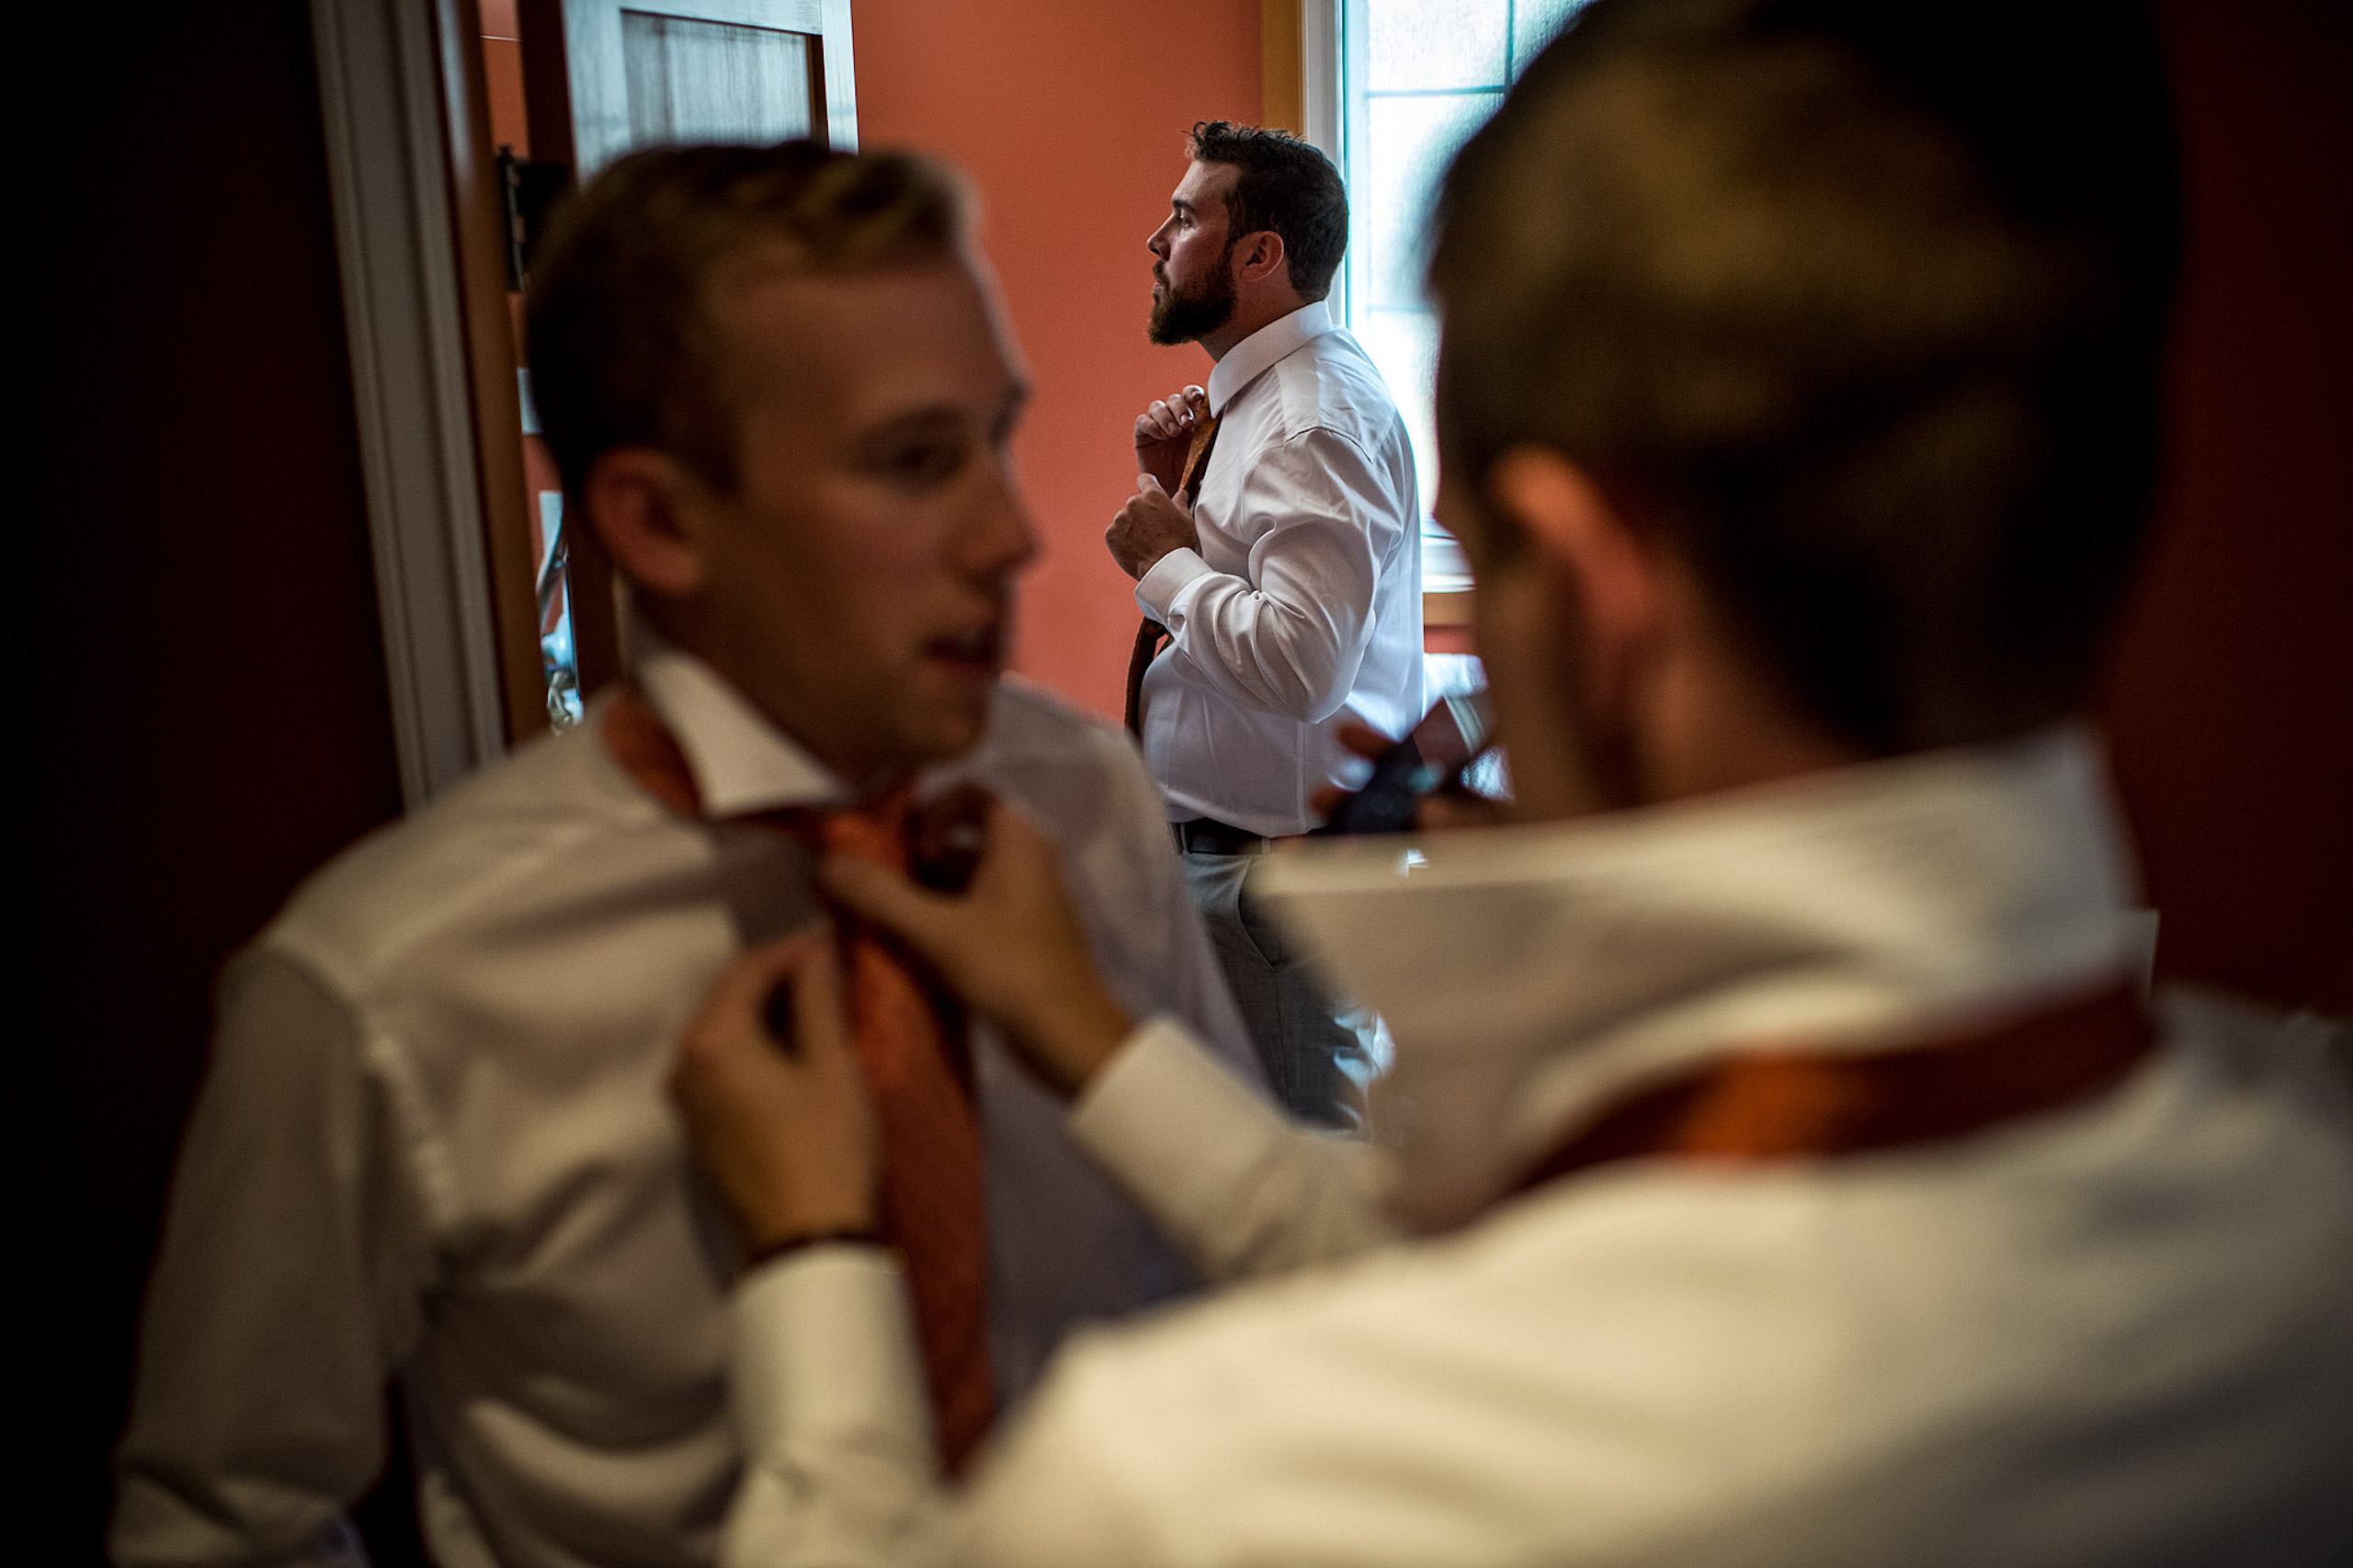 a room of groomsmen getting ready - Qualicum Wedding Photographer